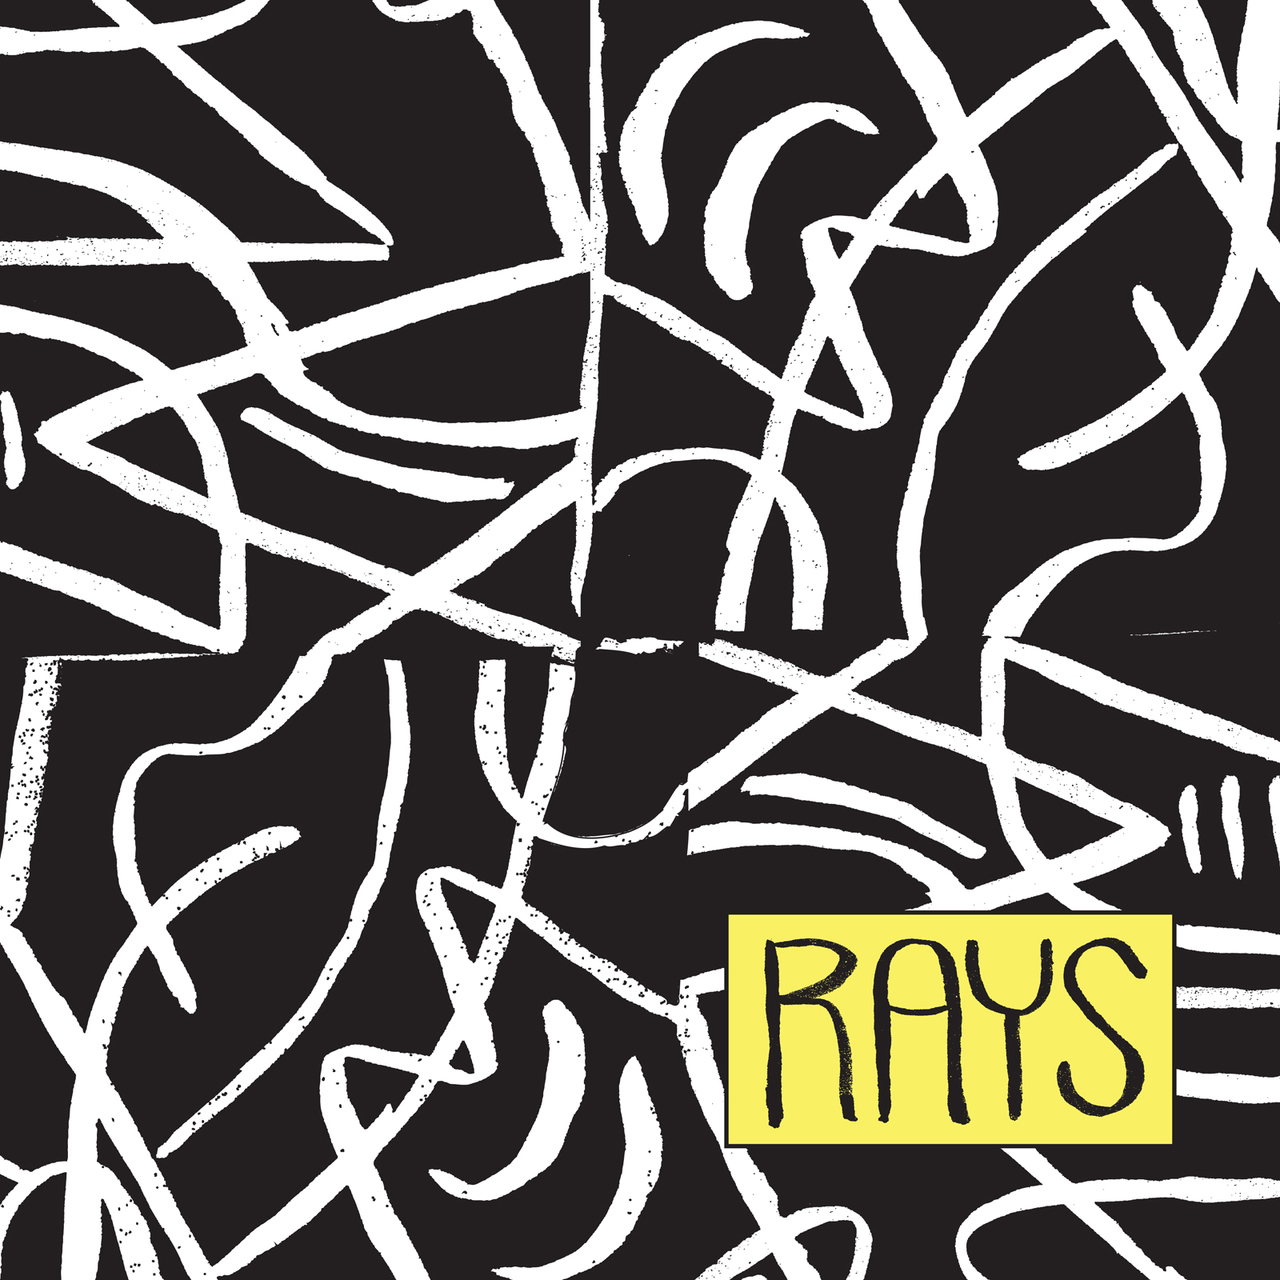 Rays Self titled